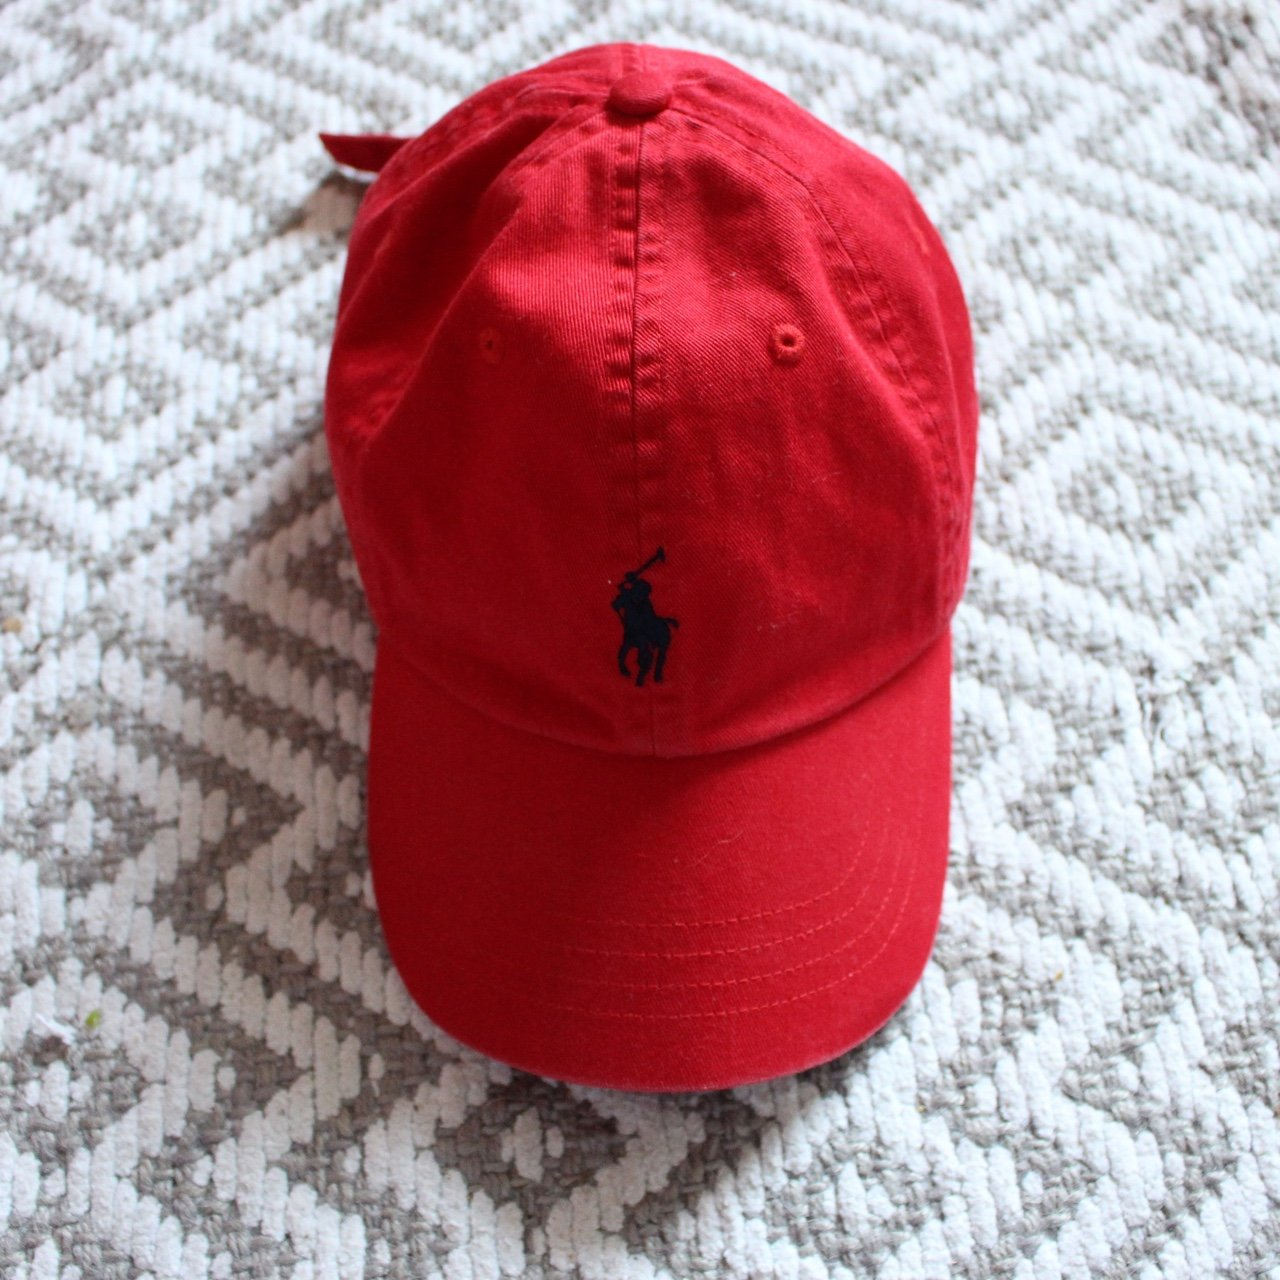 Vintage Ralph Lauren Polo Hat in Red FREE SHIPPING - Depop 922e1100ff88